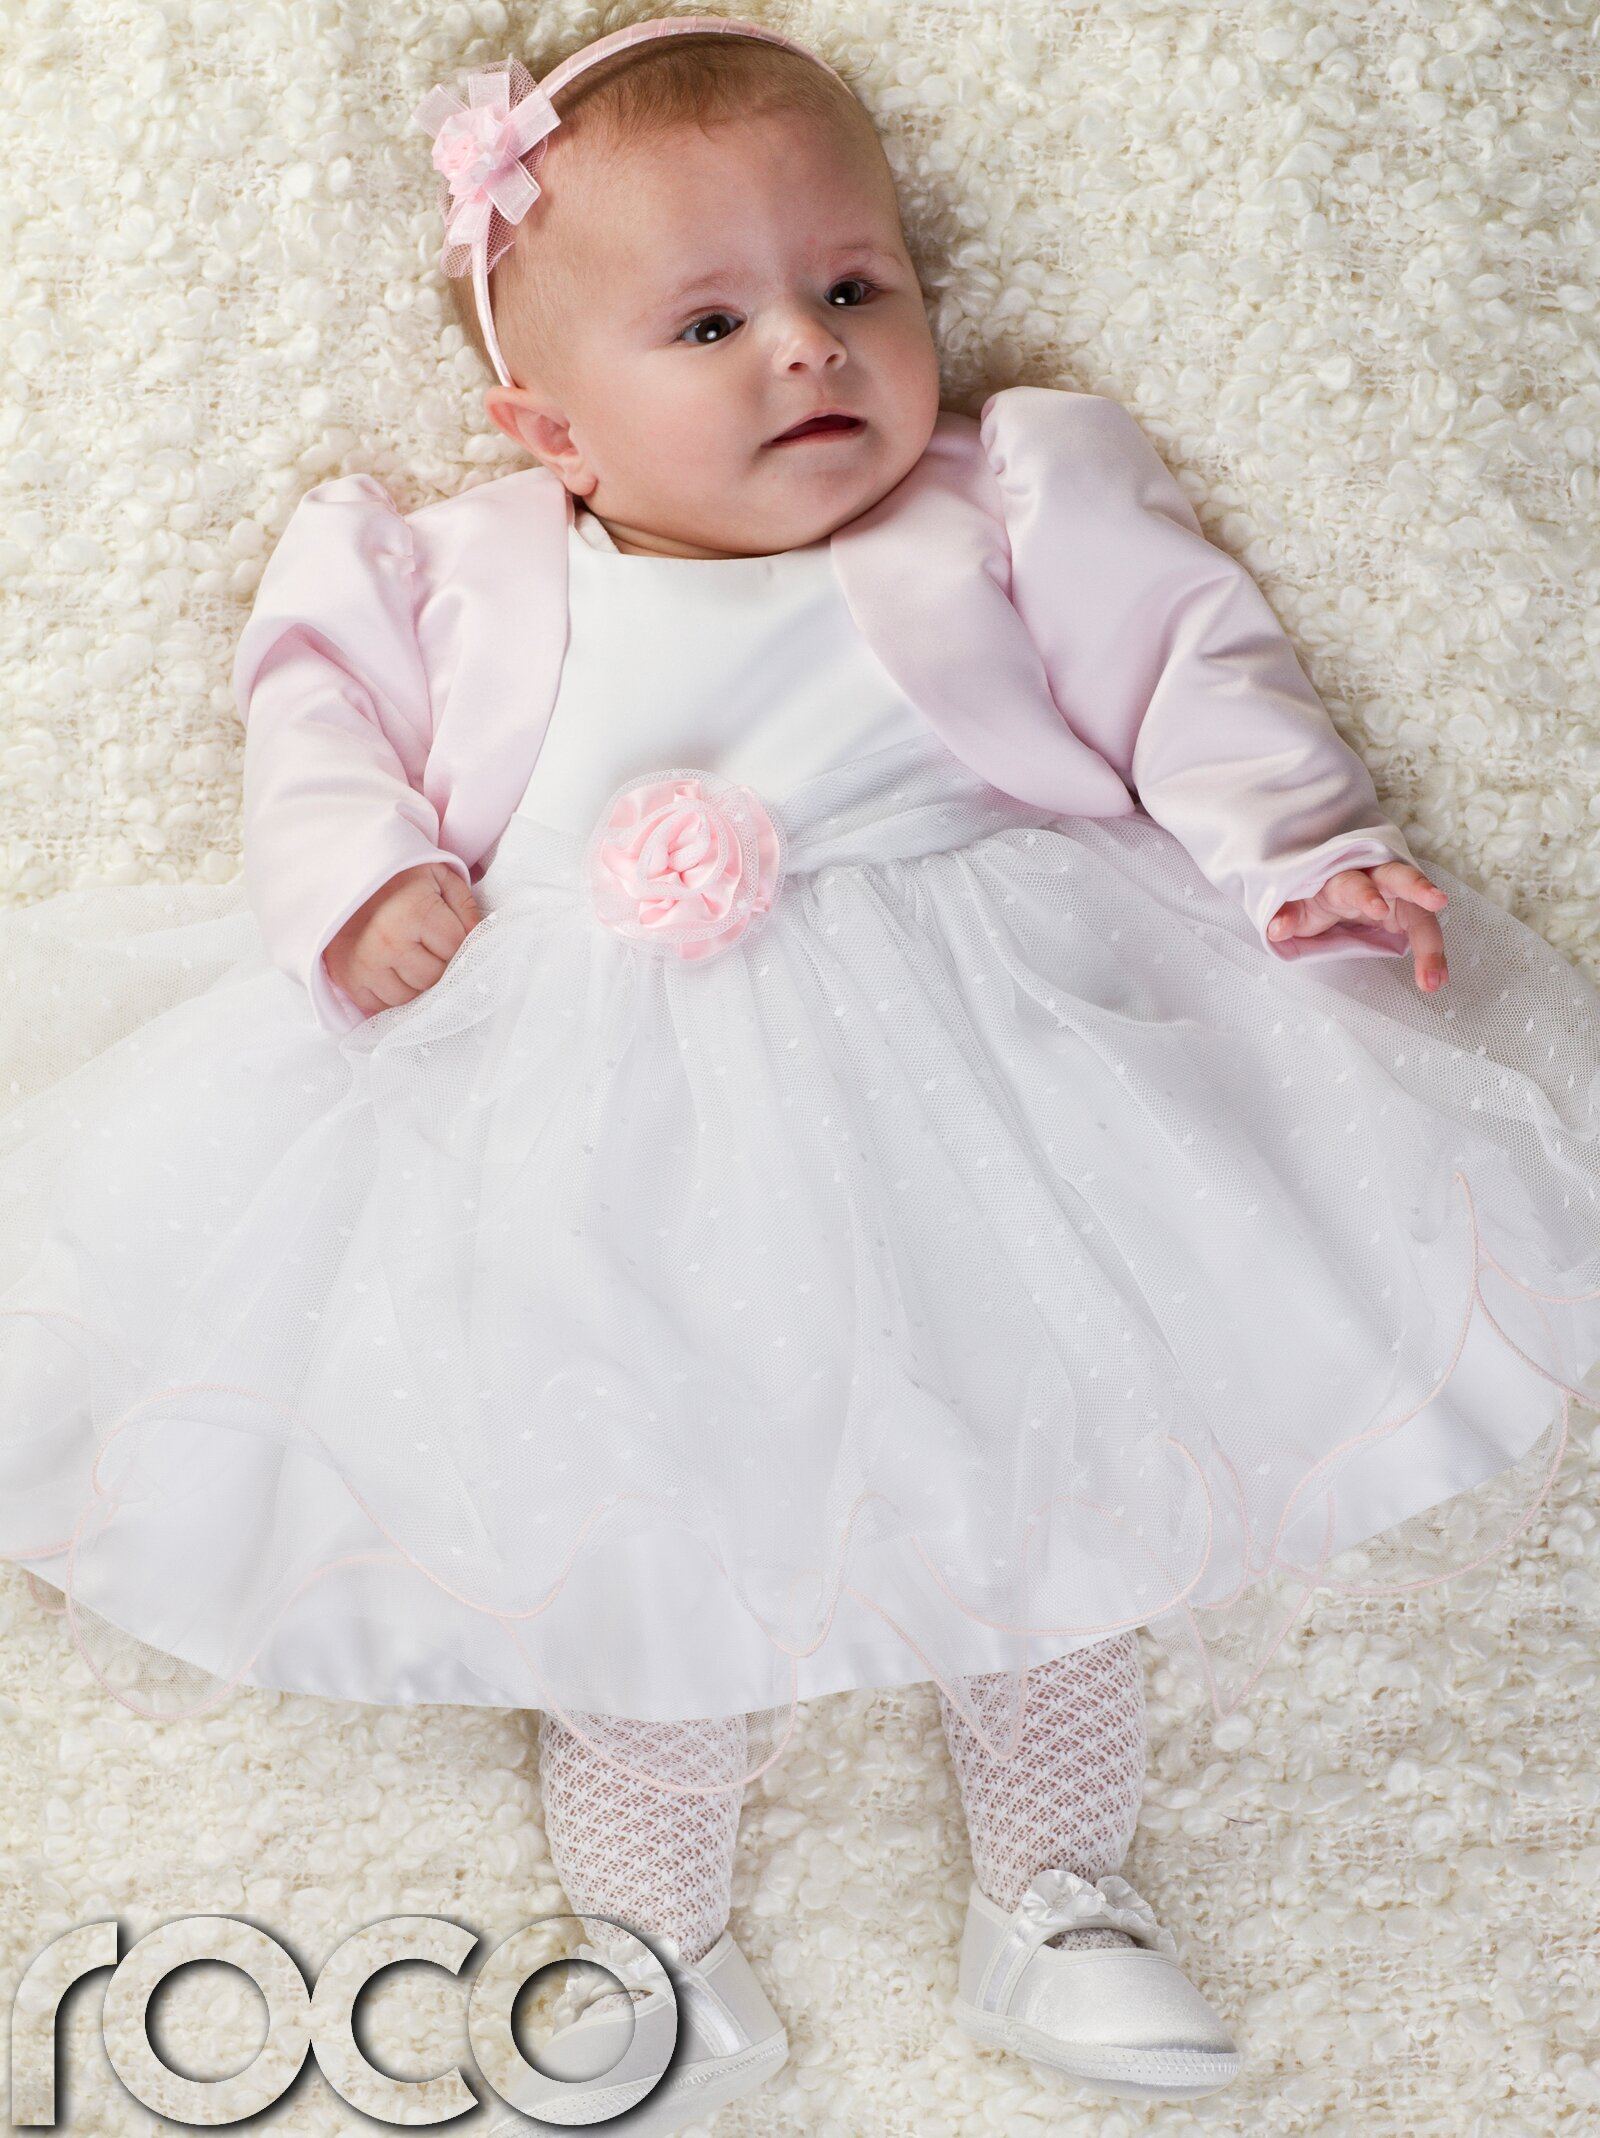 Wedding dresses for baby girl pictures ideas guide to for Girls dresses for a wedding